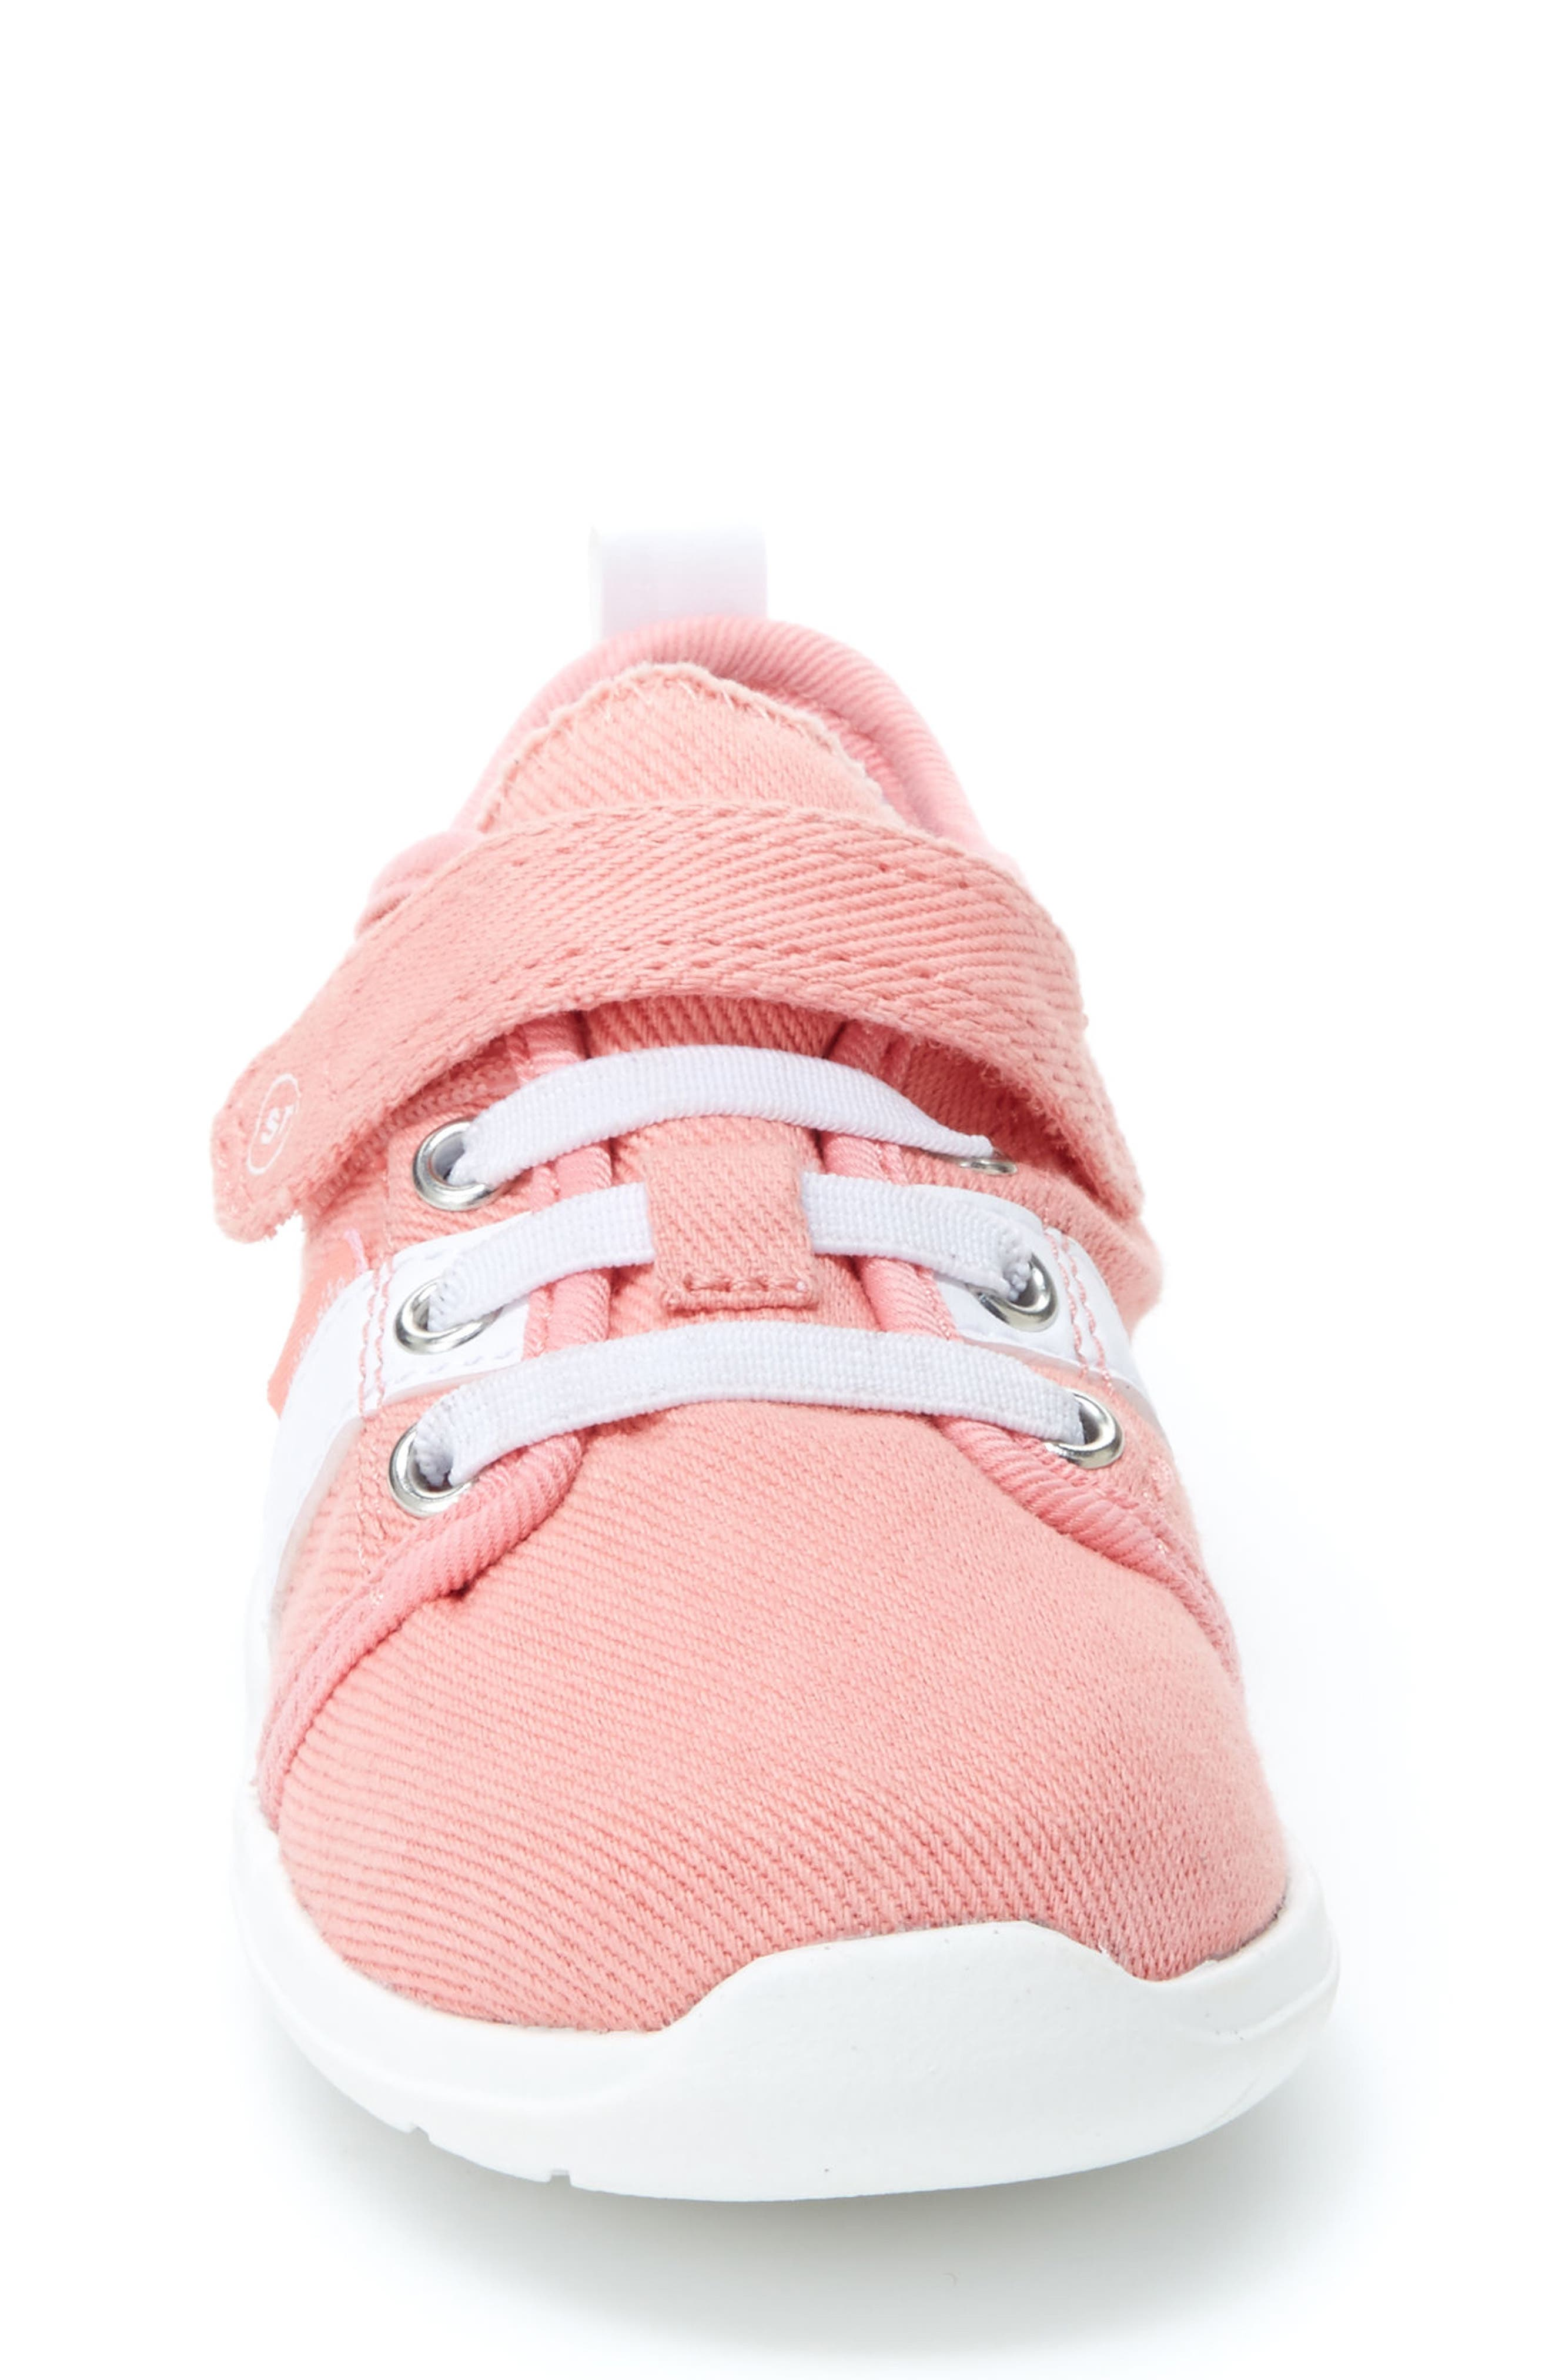 Dixon Sneaker,                             Alternate thumbnail 4, color,                             Pink